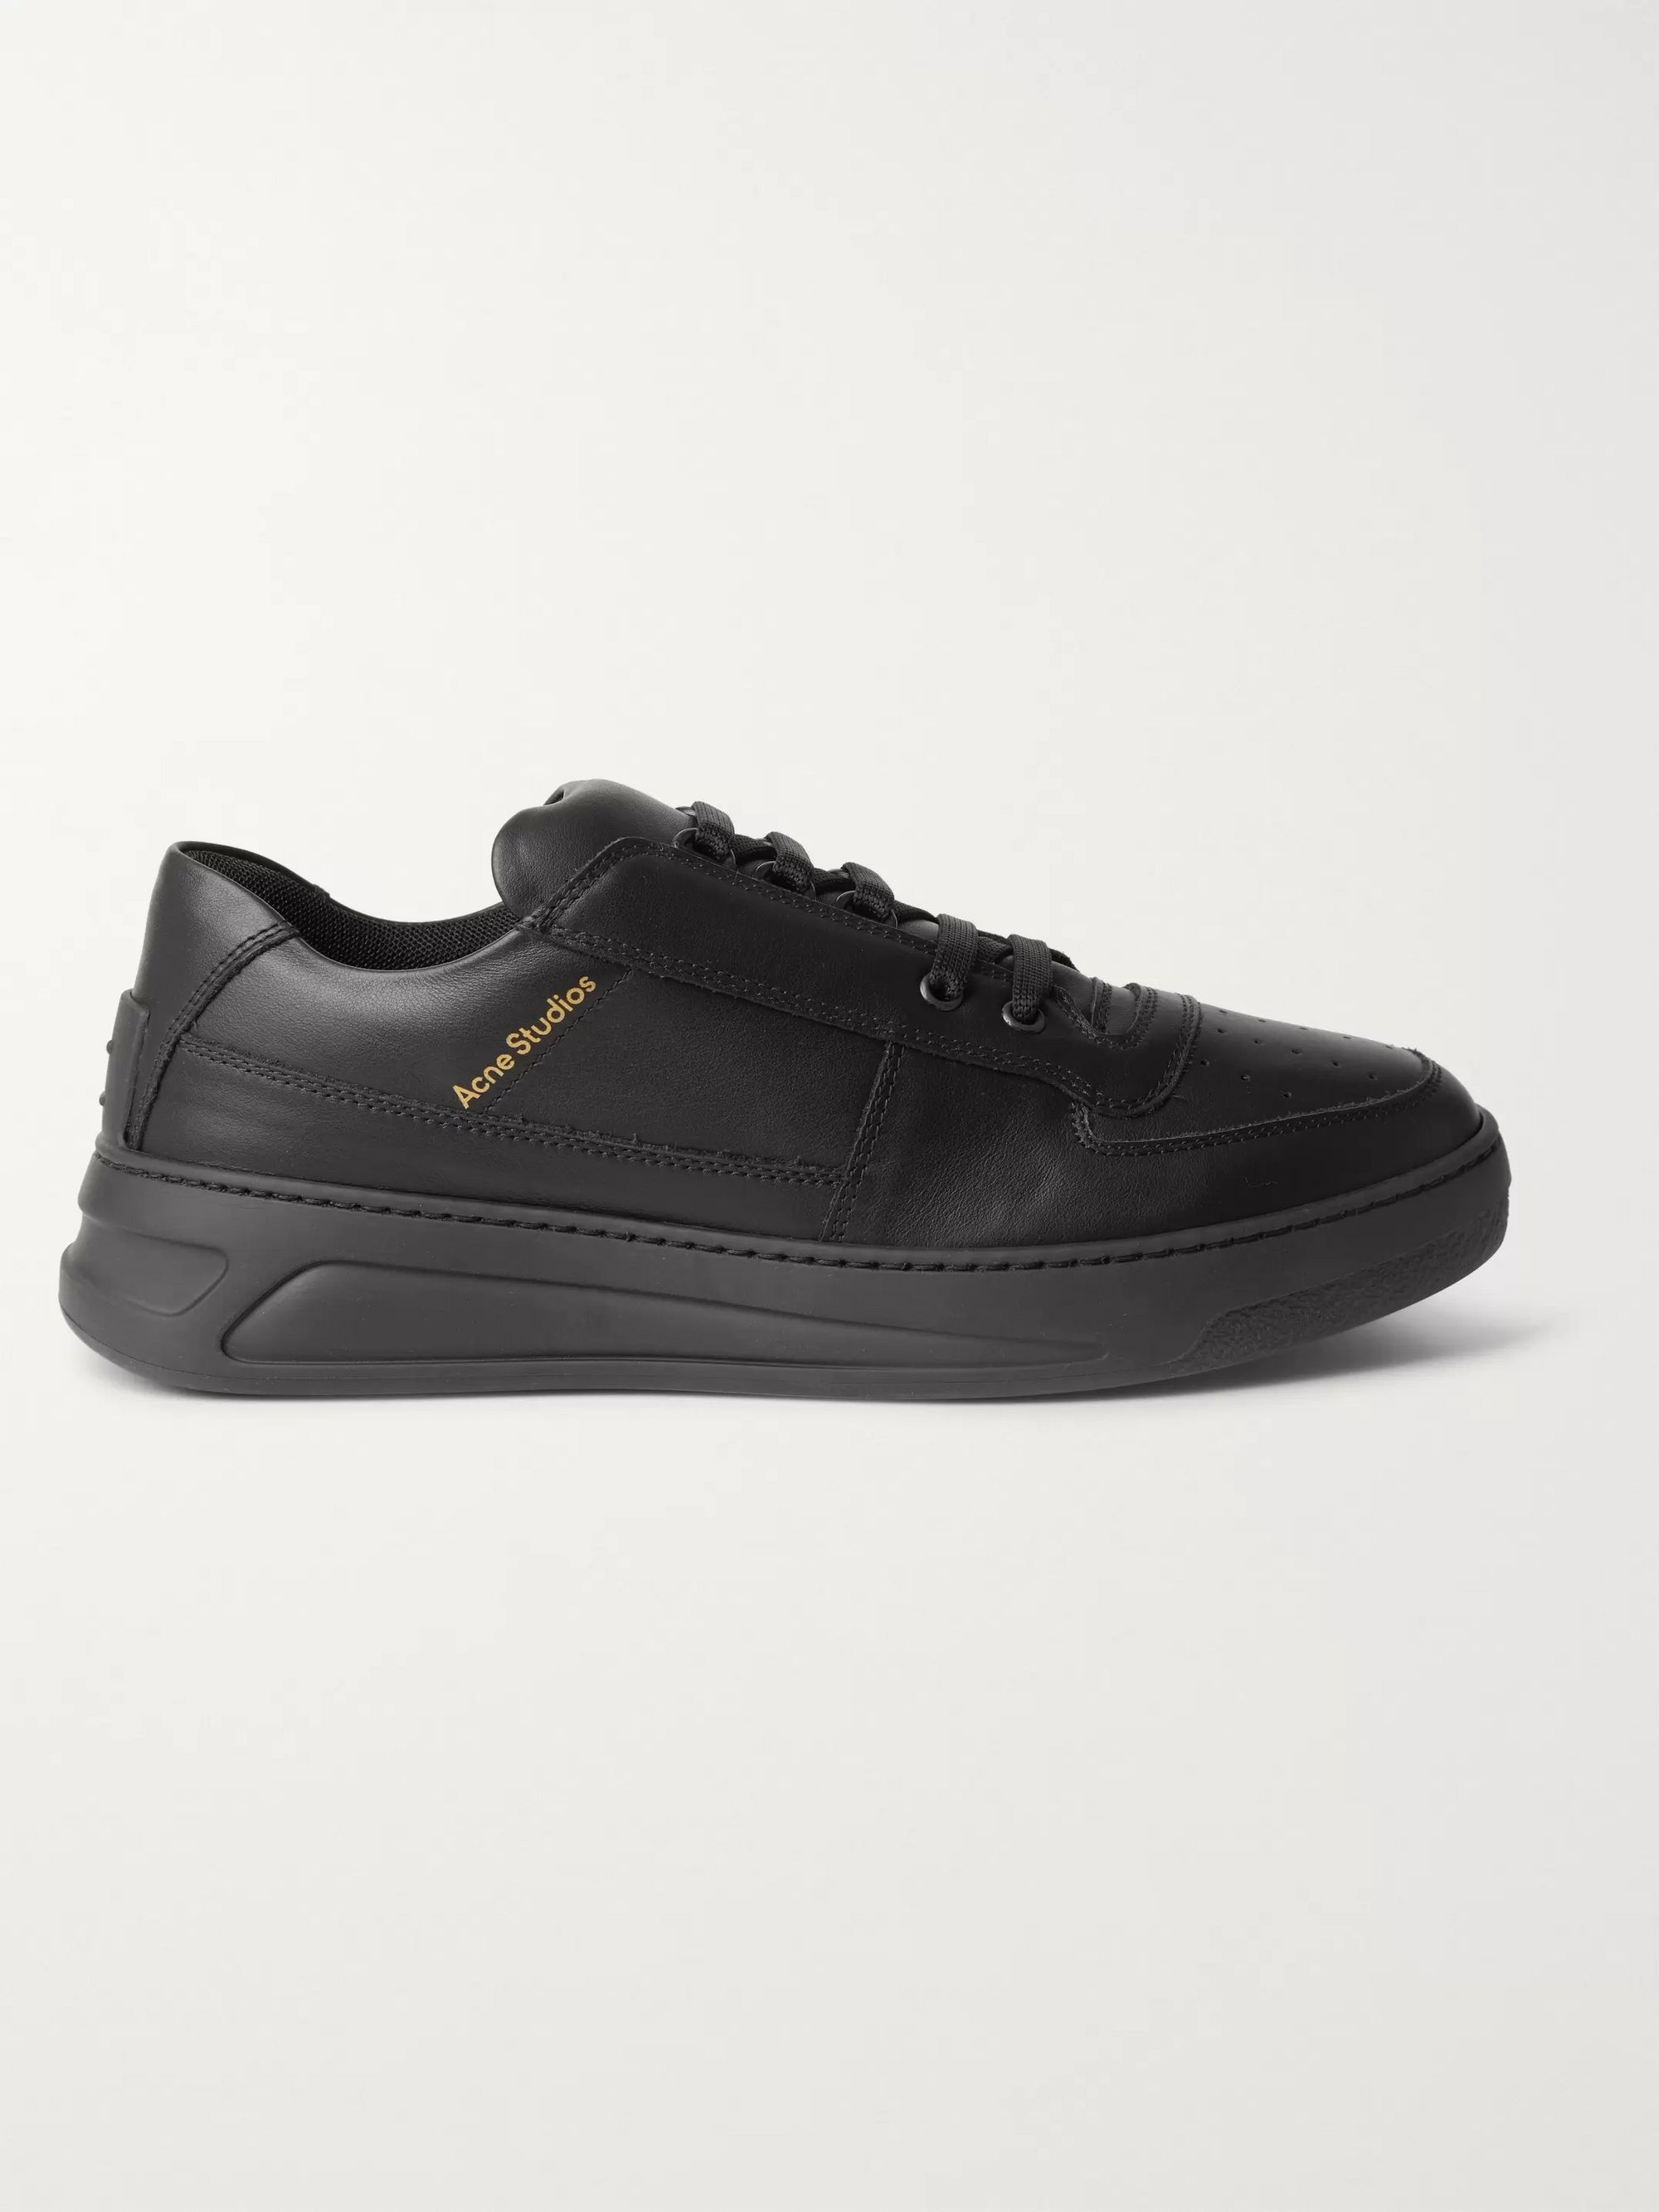 Acne Studios Leather Sneakers